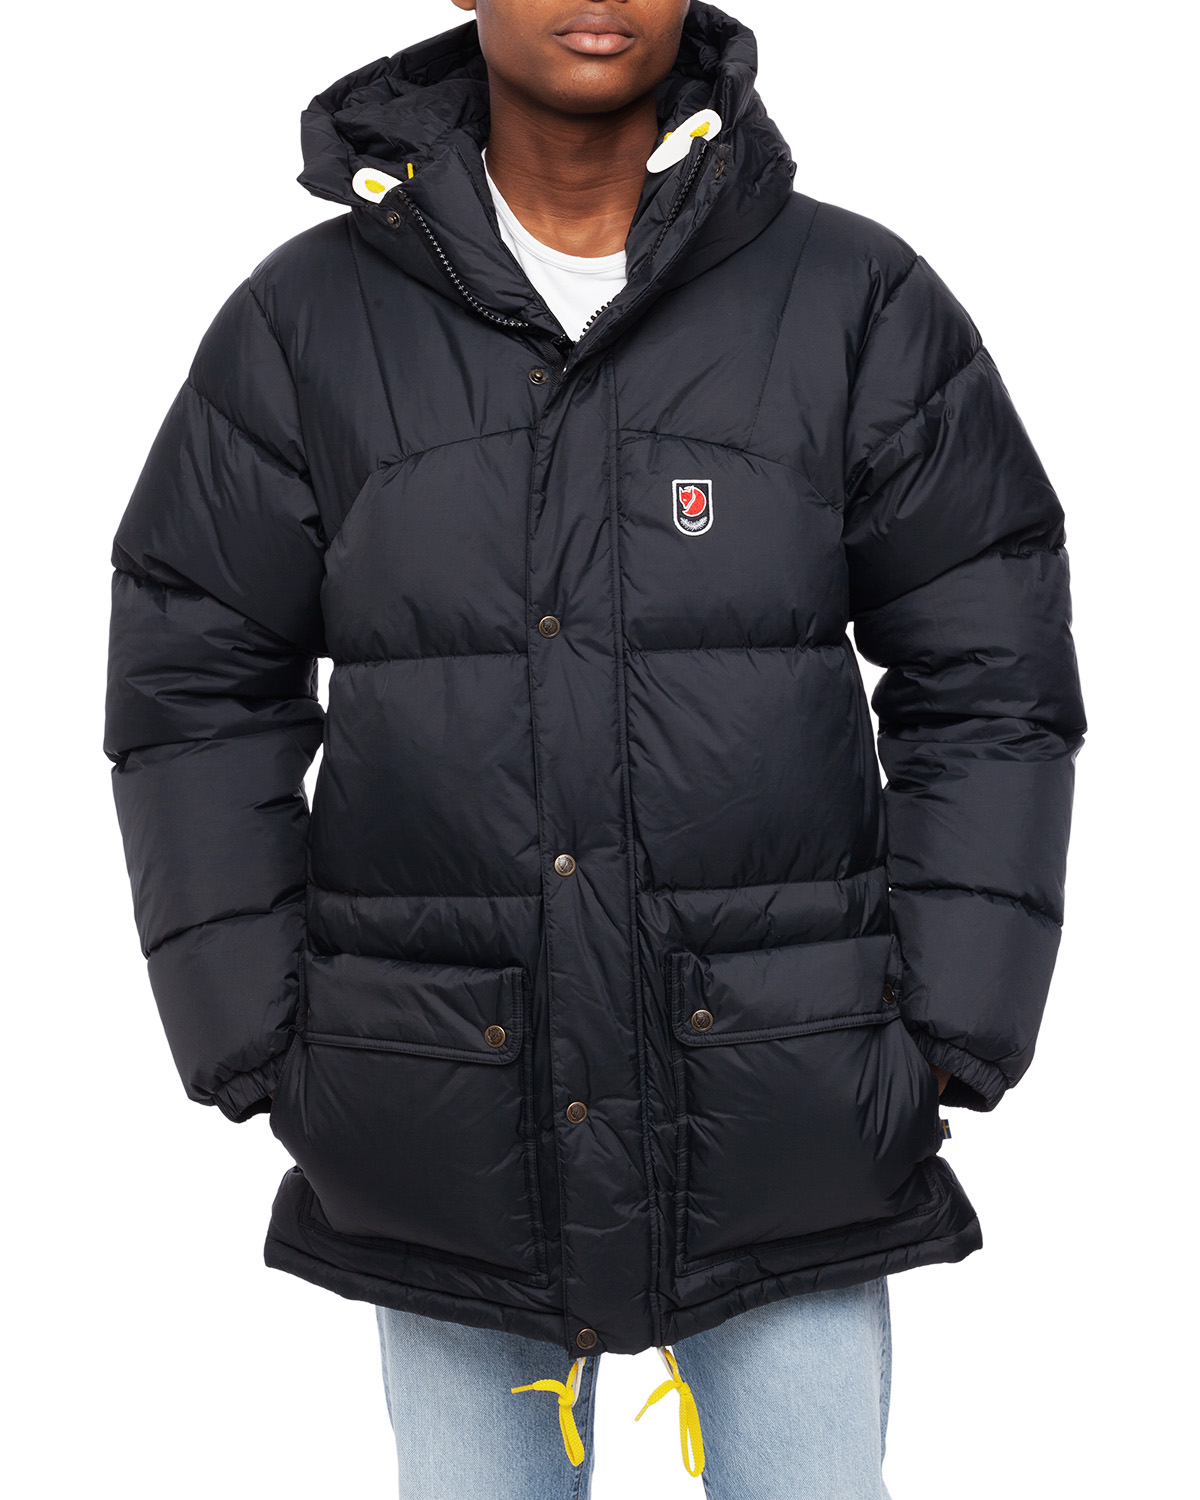 Expedition Down Jacket M Black